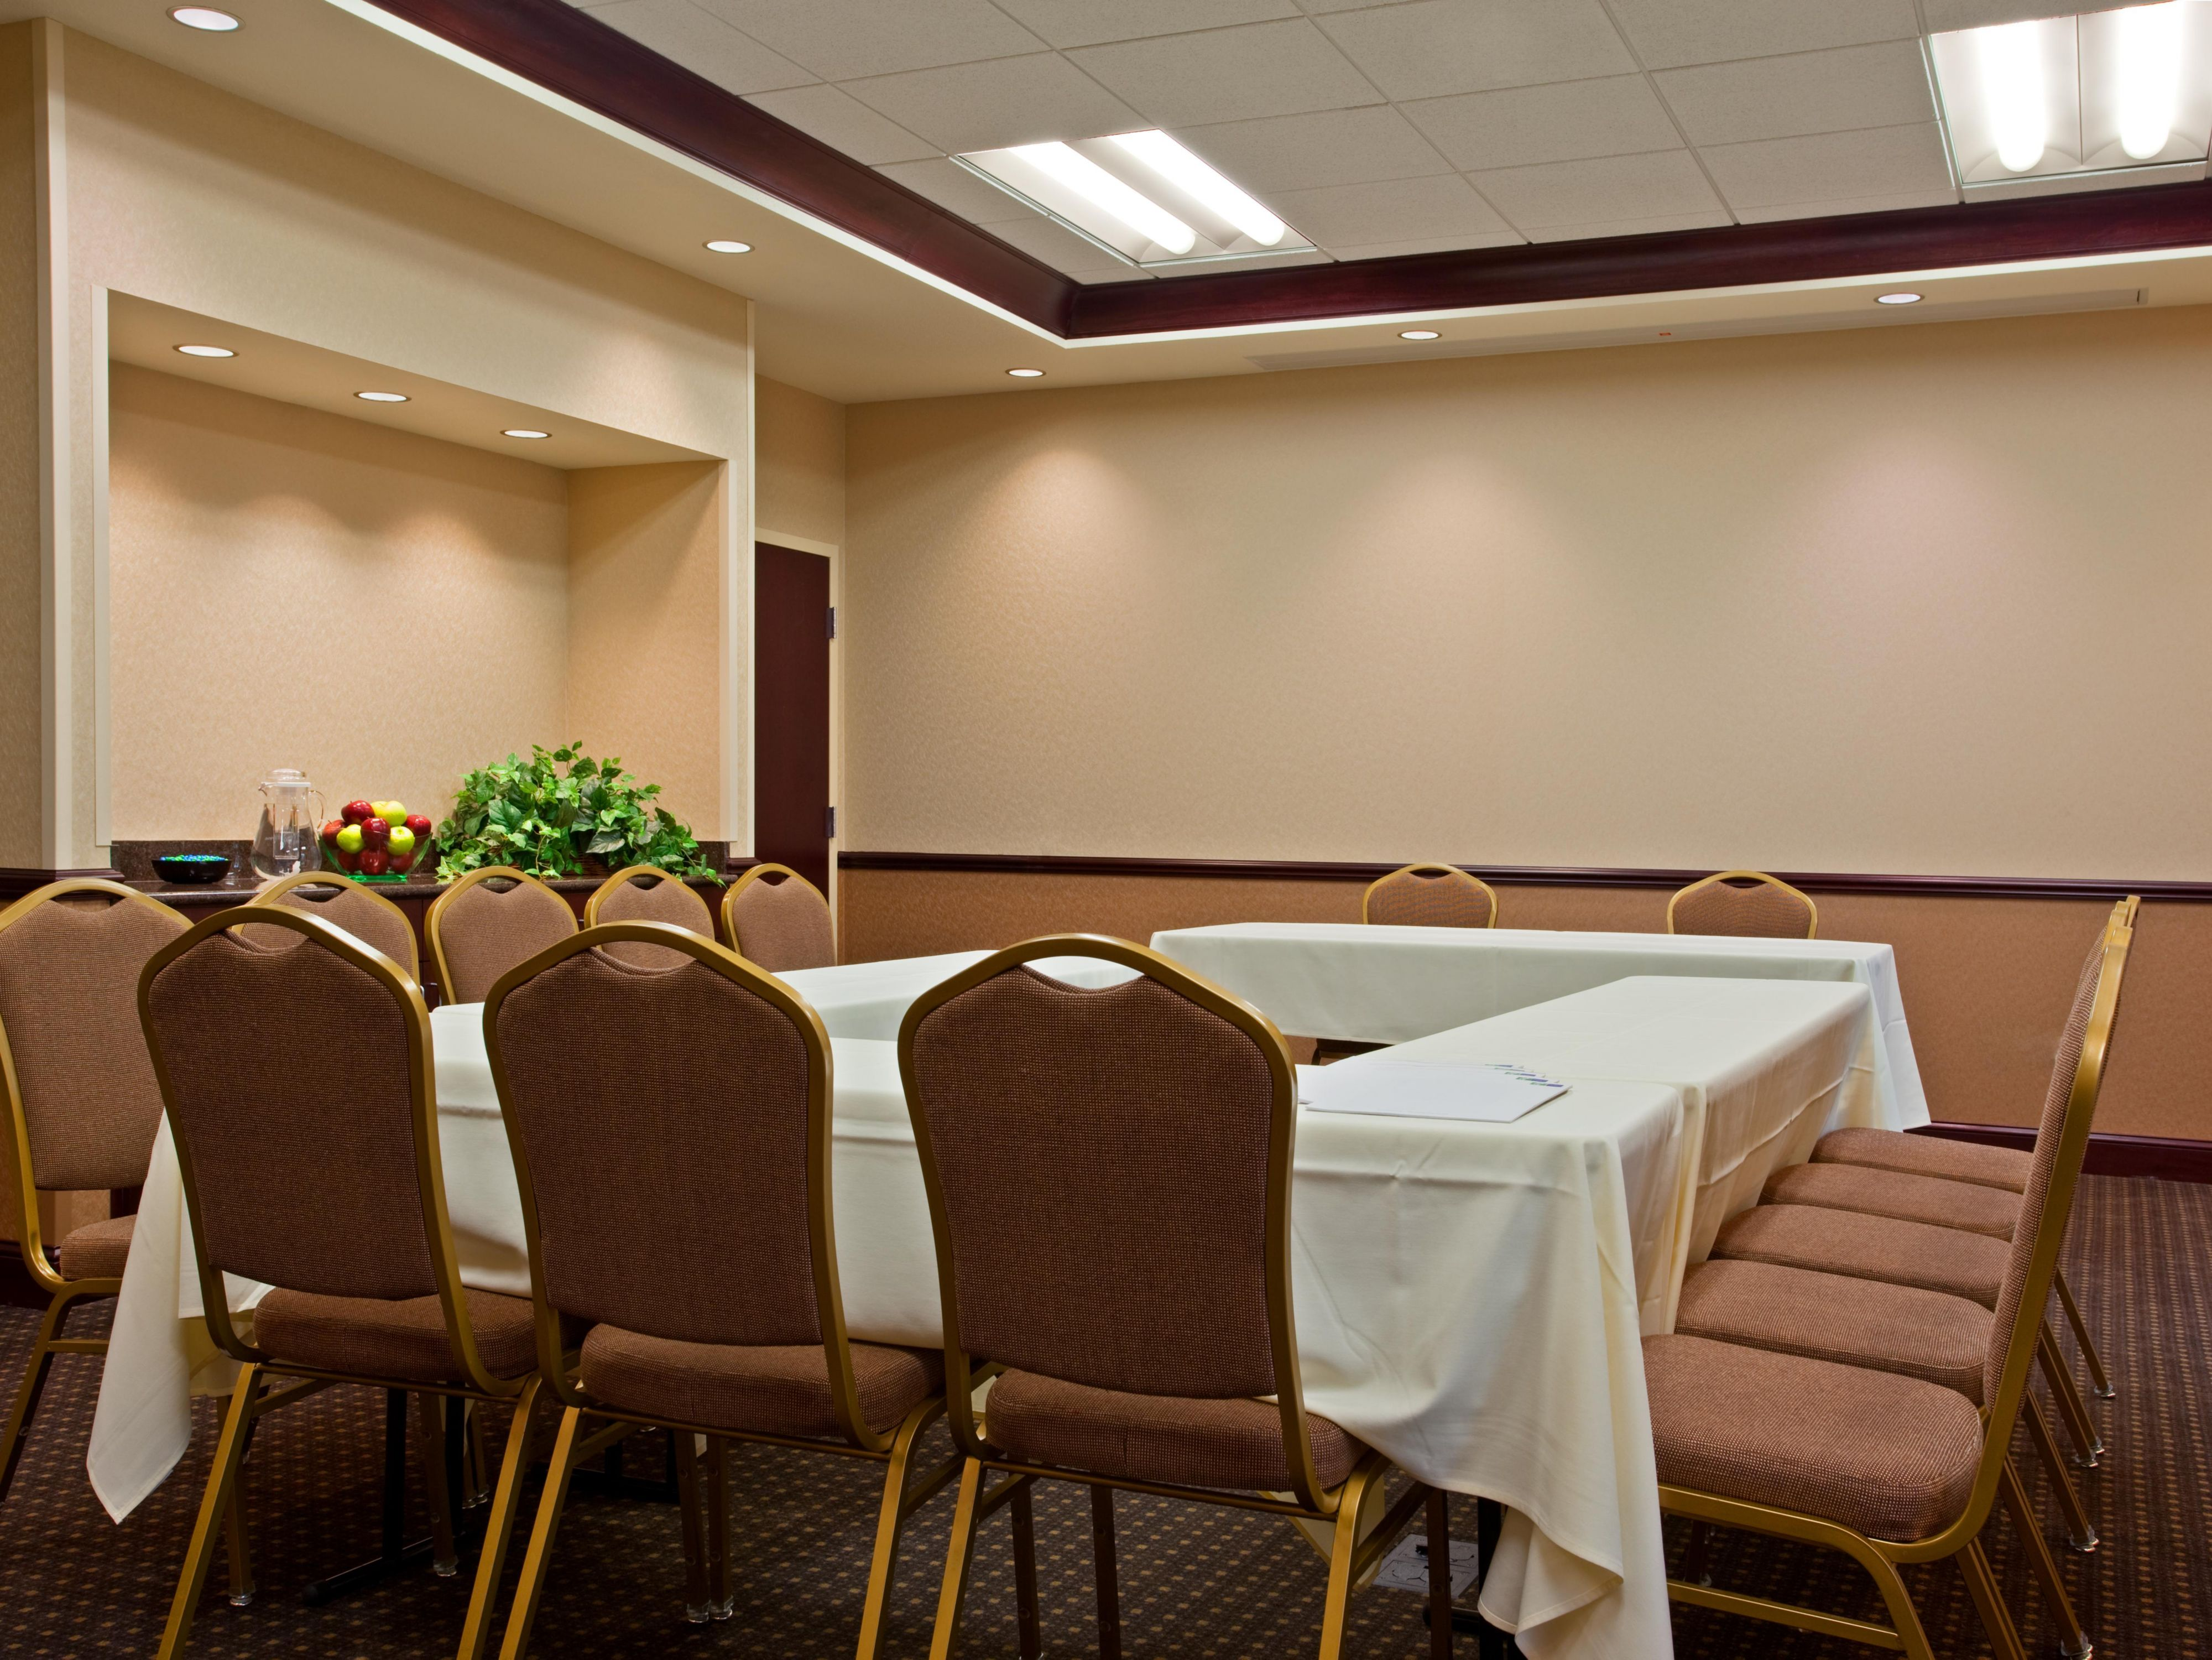 Business Meetings or Social Gatherings from 5 to 30 guests